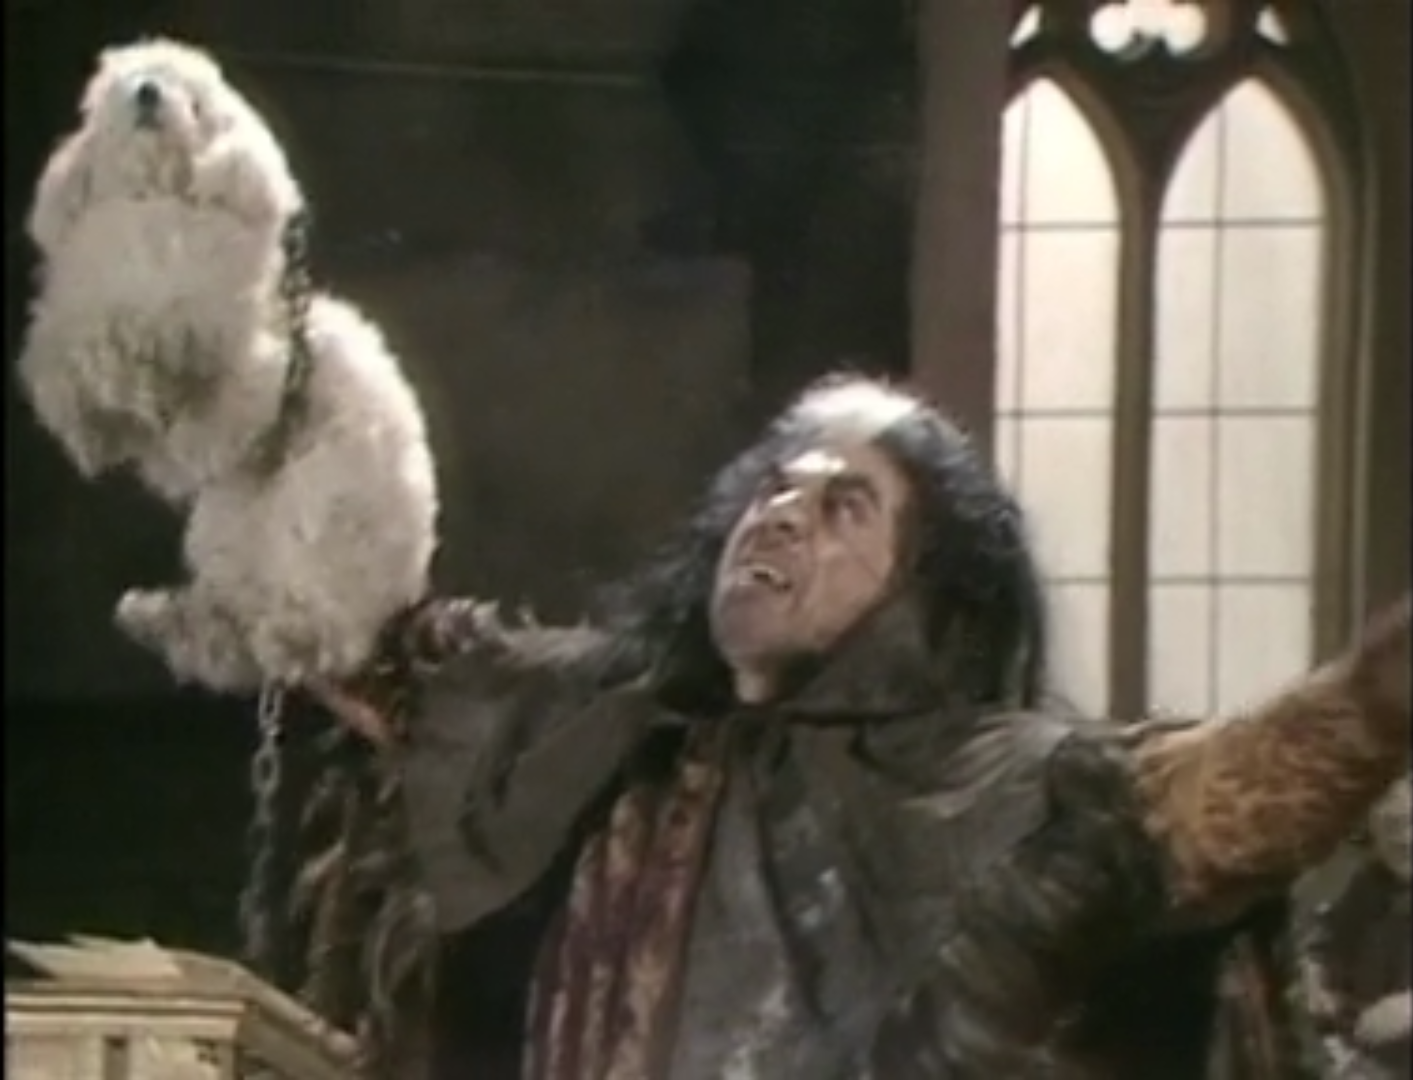 Blackadder series 1 episode 5 witchsmeller